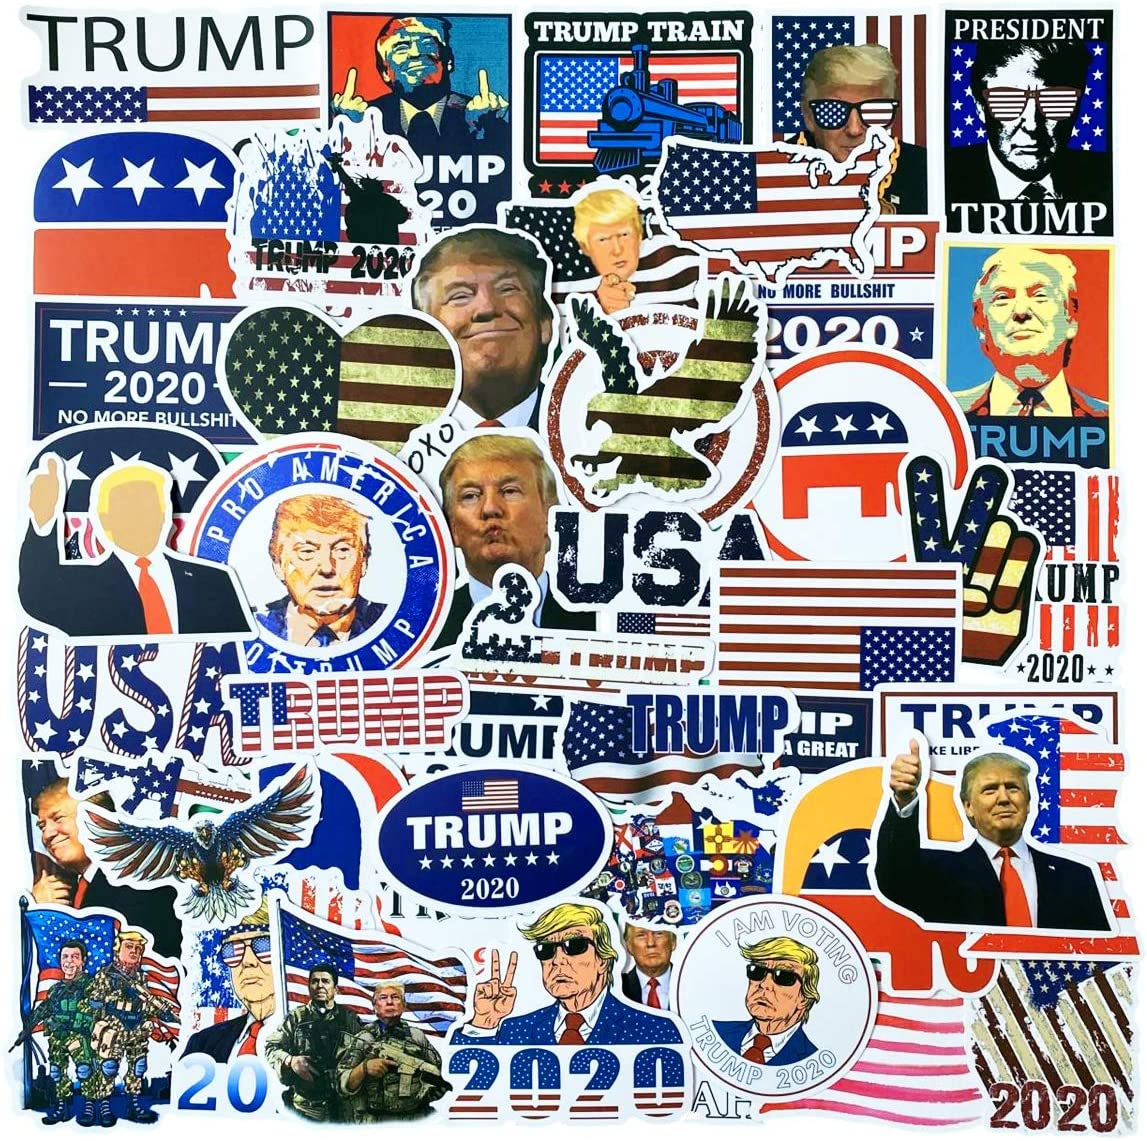 50pcs Trump Stickers, Funny Cartoon Comic Style Trump Vinyl Decals for Laptop, Car, Water Bottle, Bike. Trump